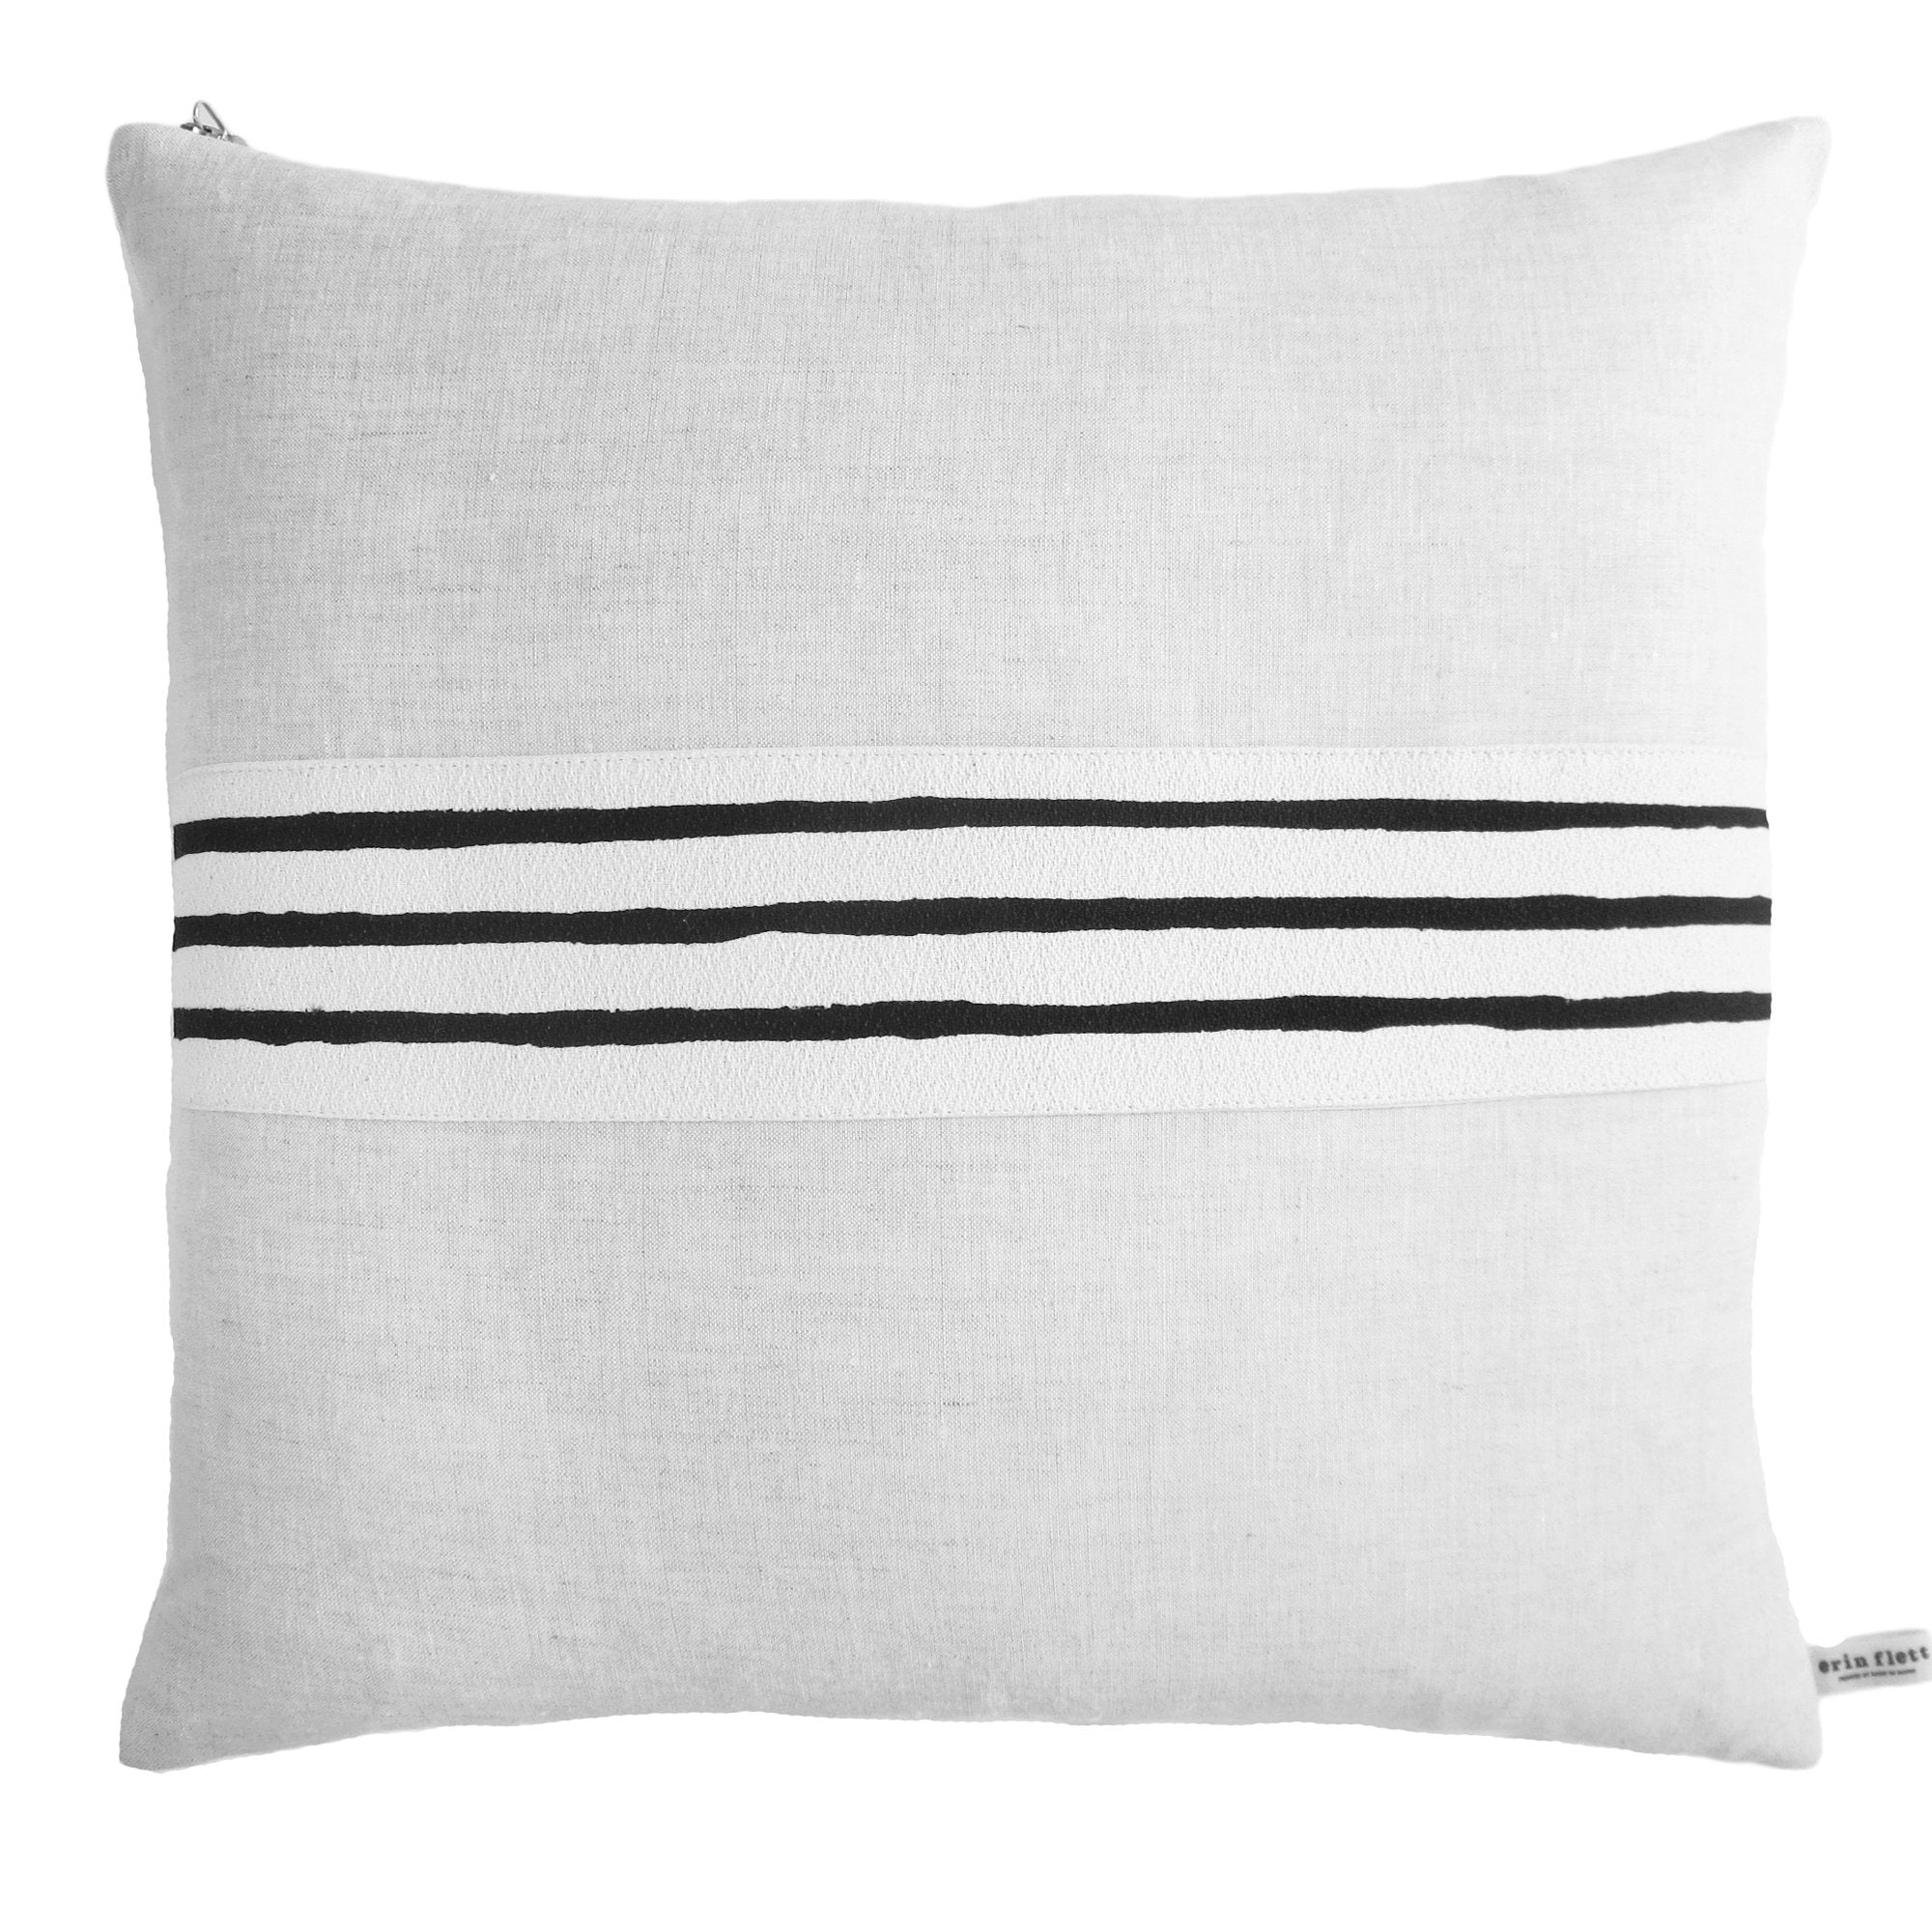 BLACK 3 LINE BAND LINEN PILLOW